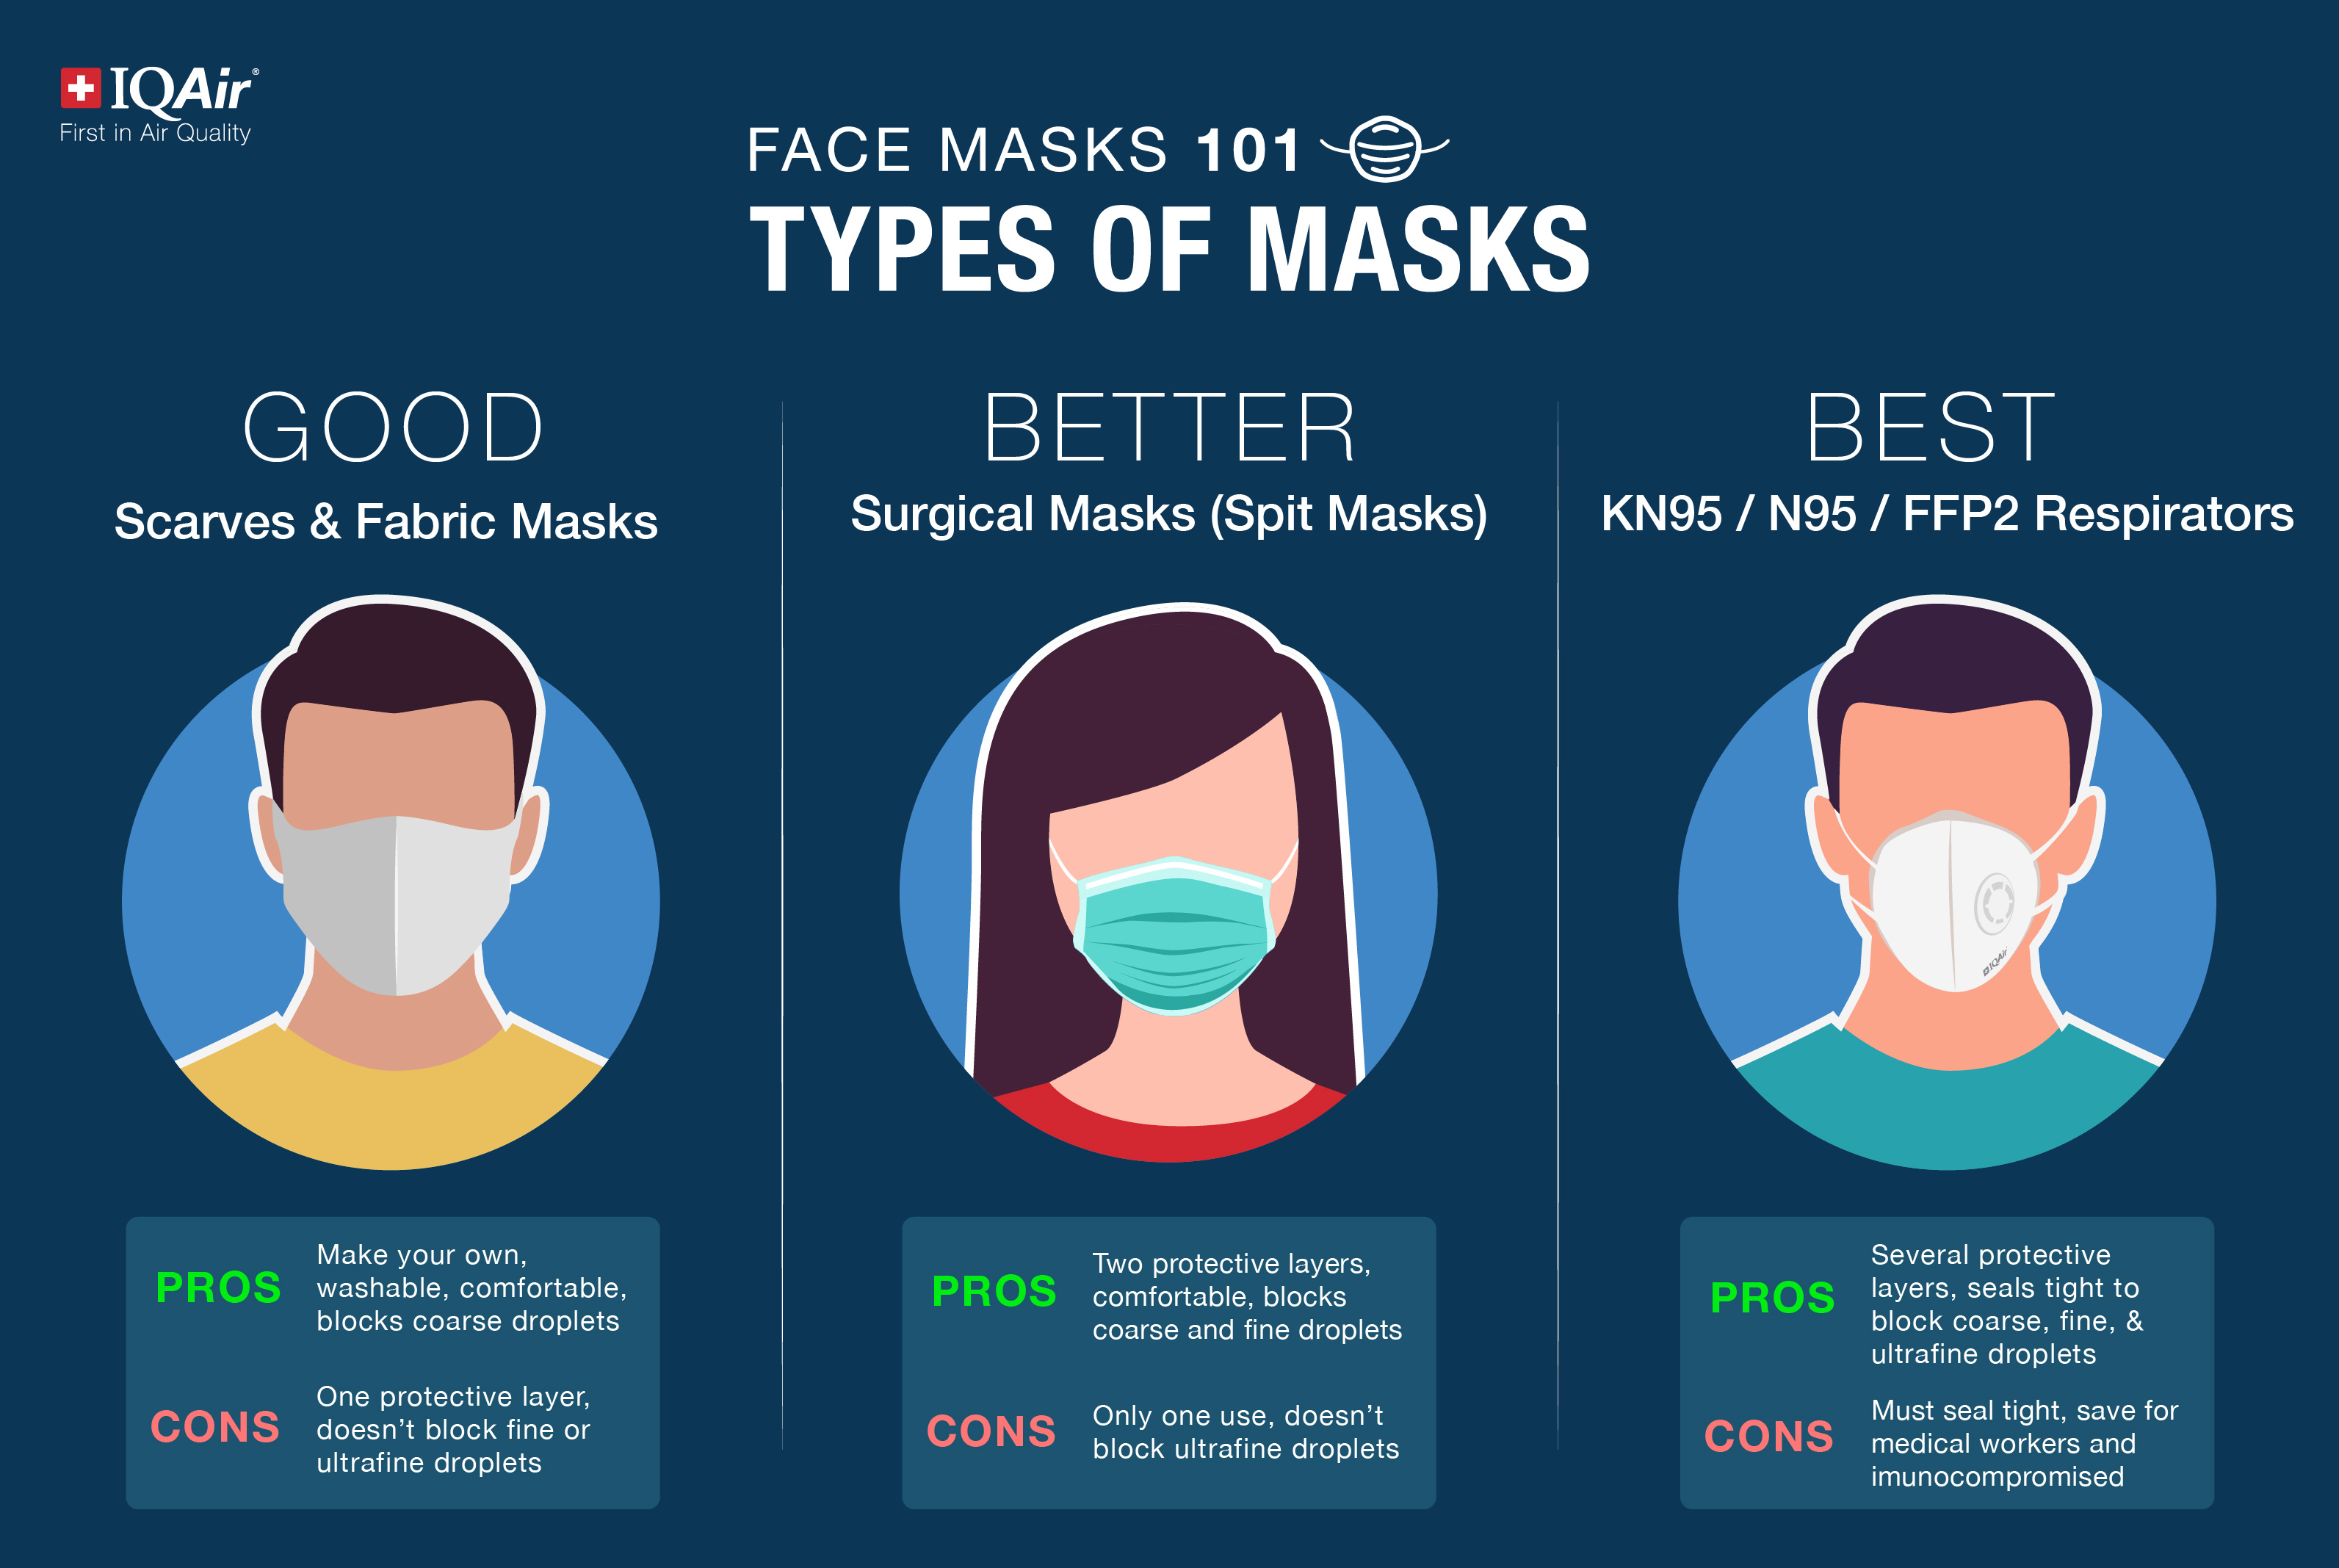 What is the best face mask?